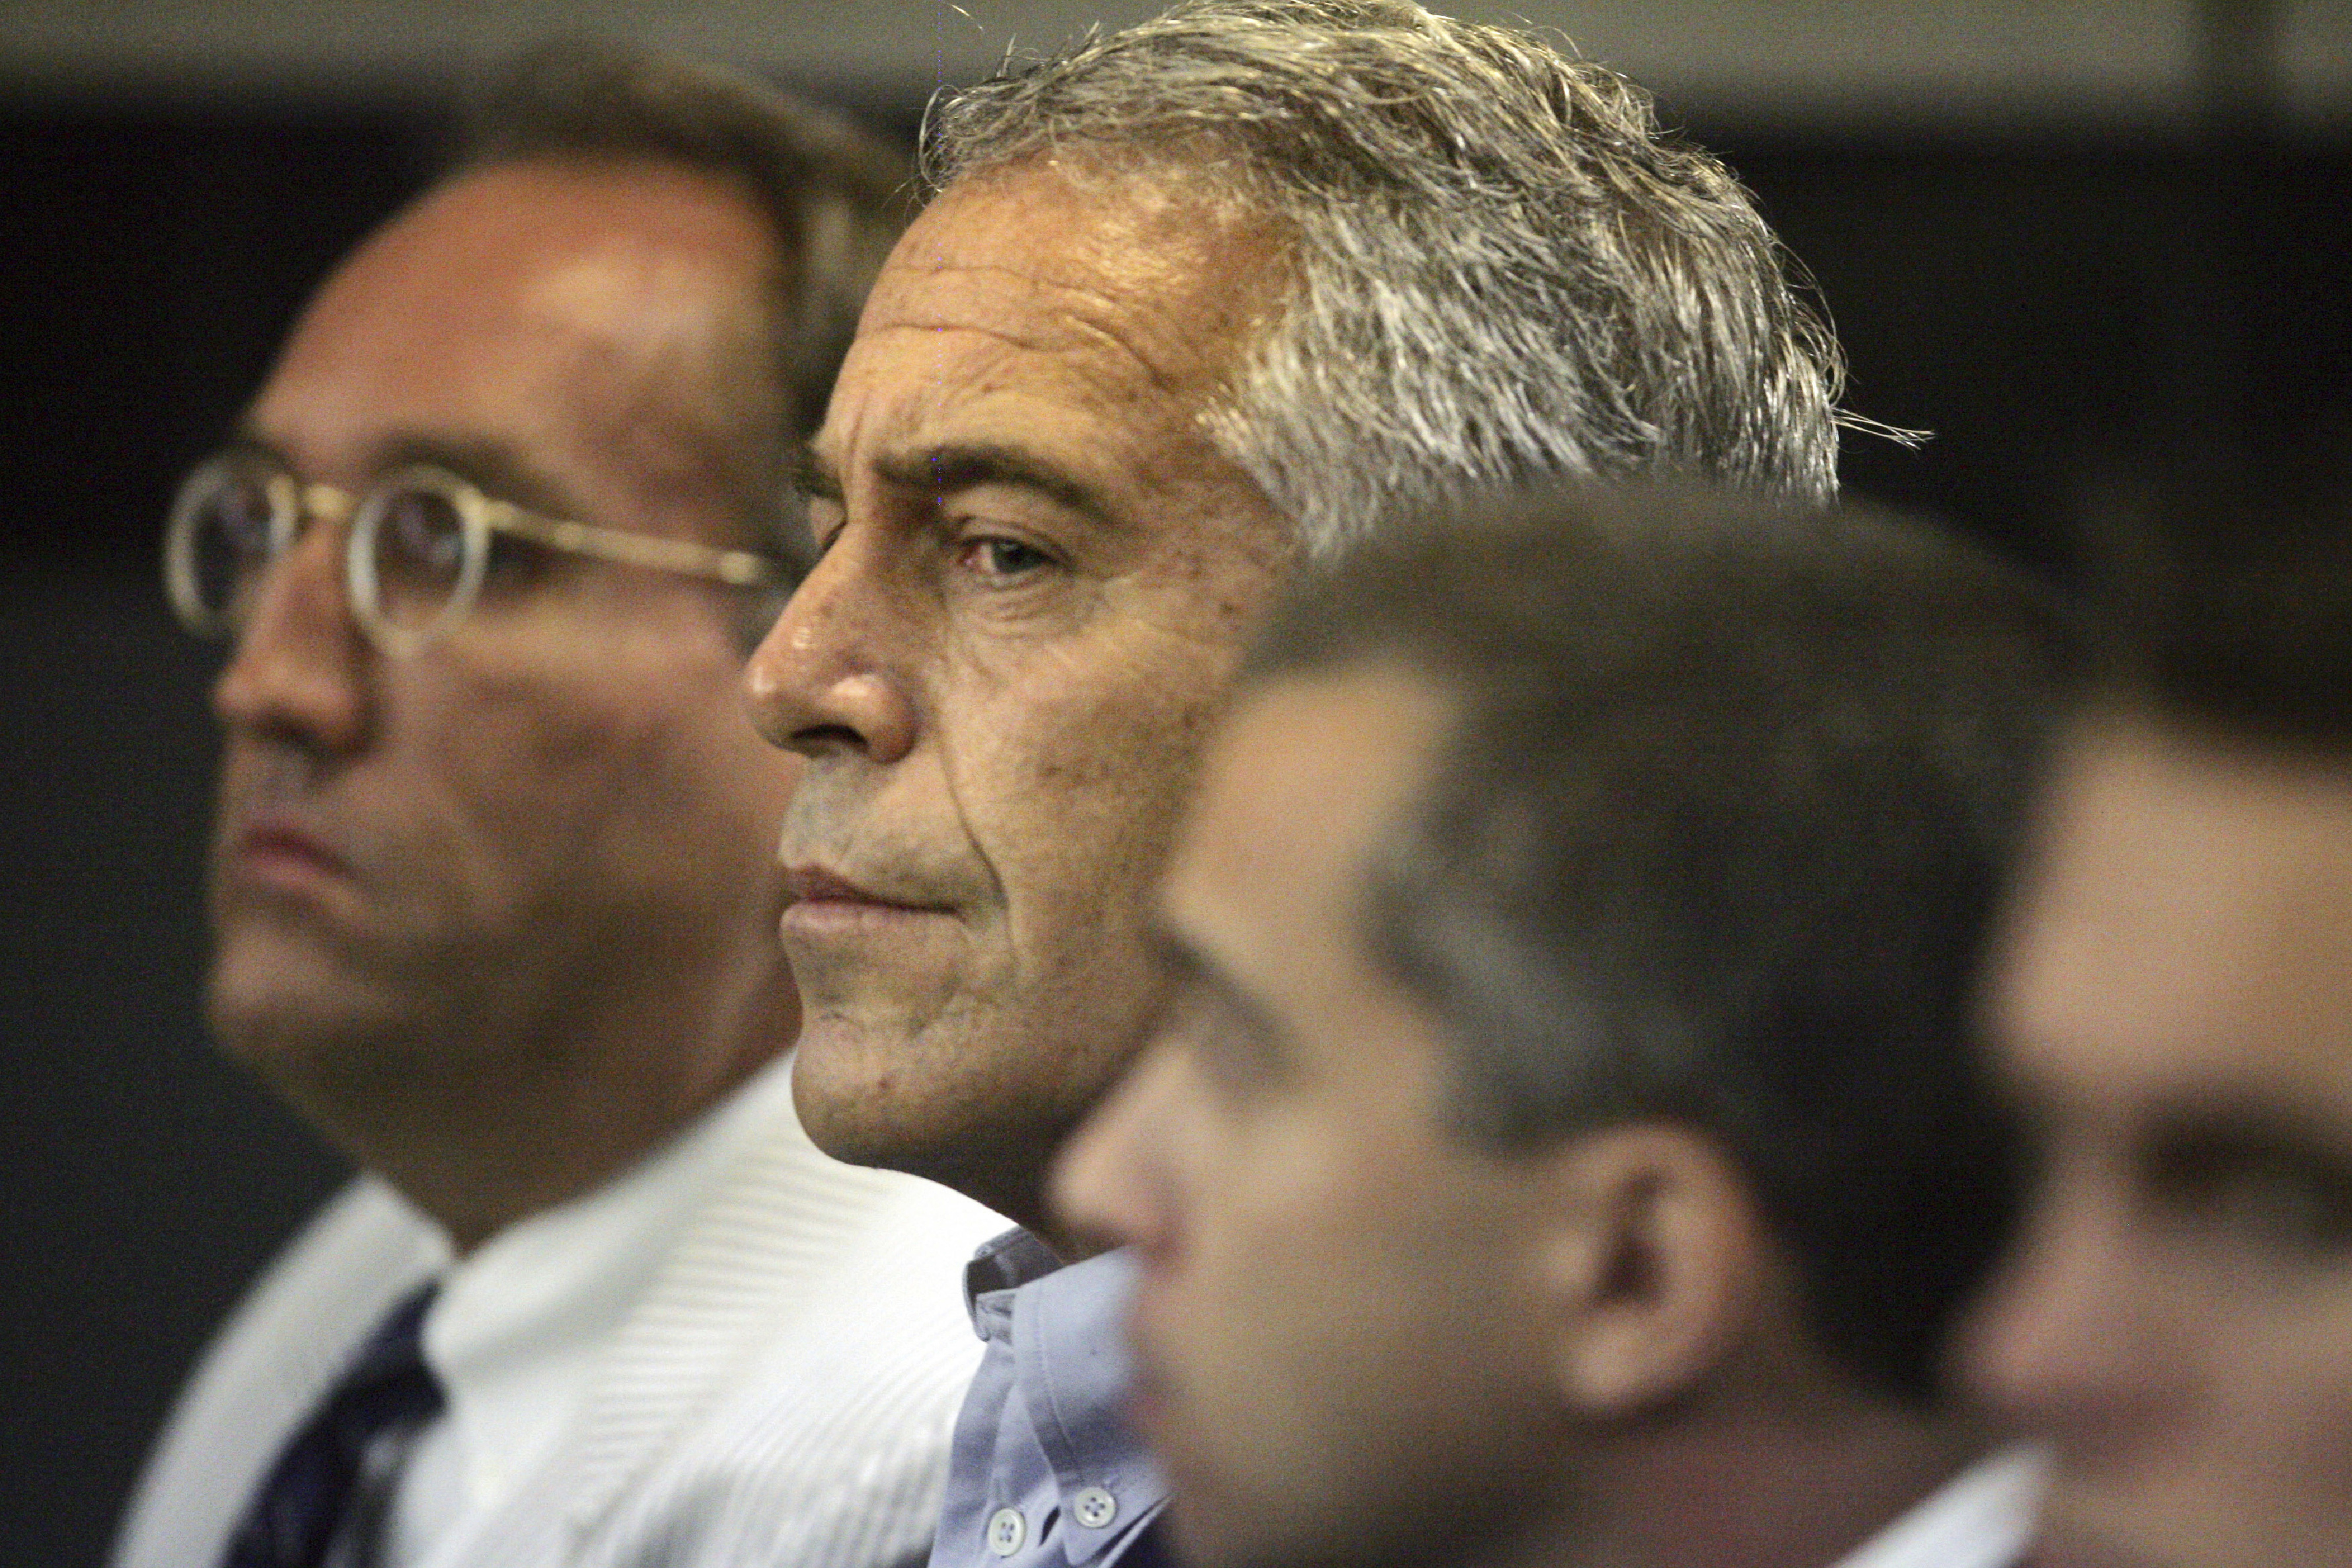 The Latest: Prosecution: Epstein could influence witness